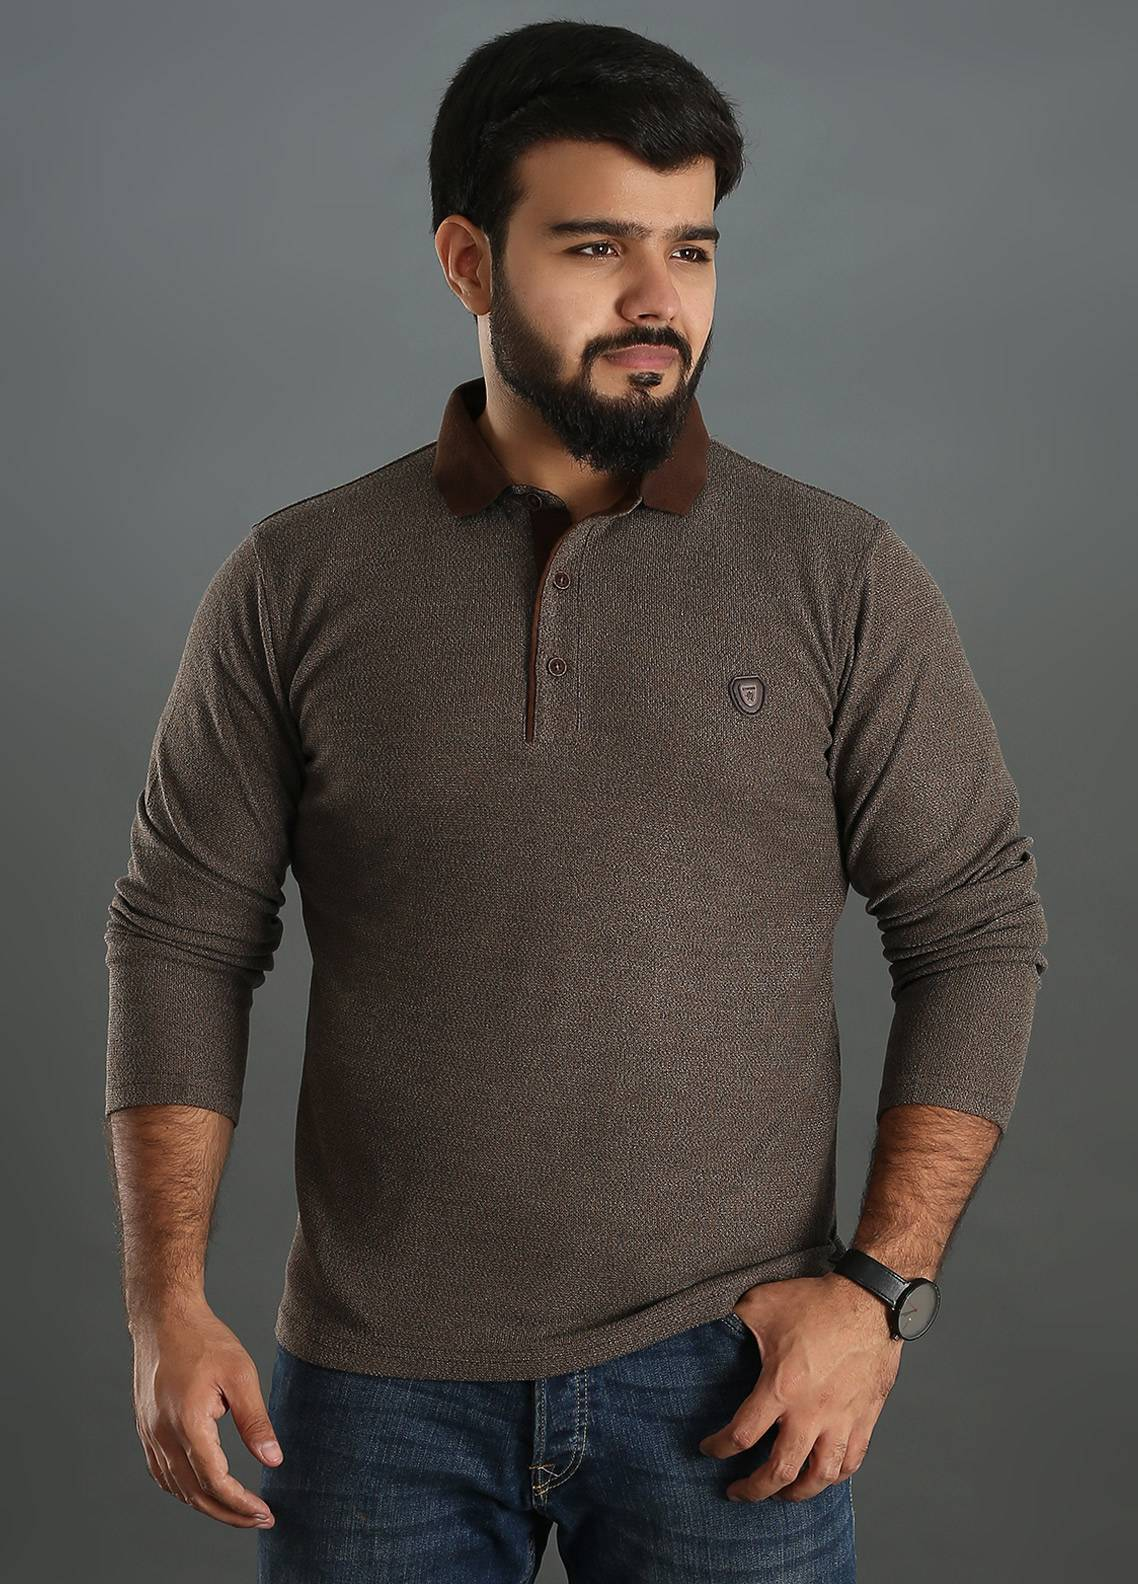 Sanaulla Exclusive Range Jersey Polo Full Sleeves for Men - Brown SAM18TS 03